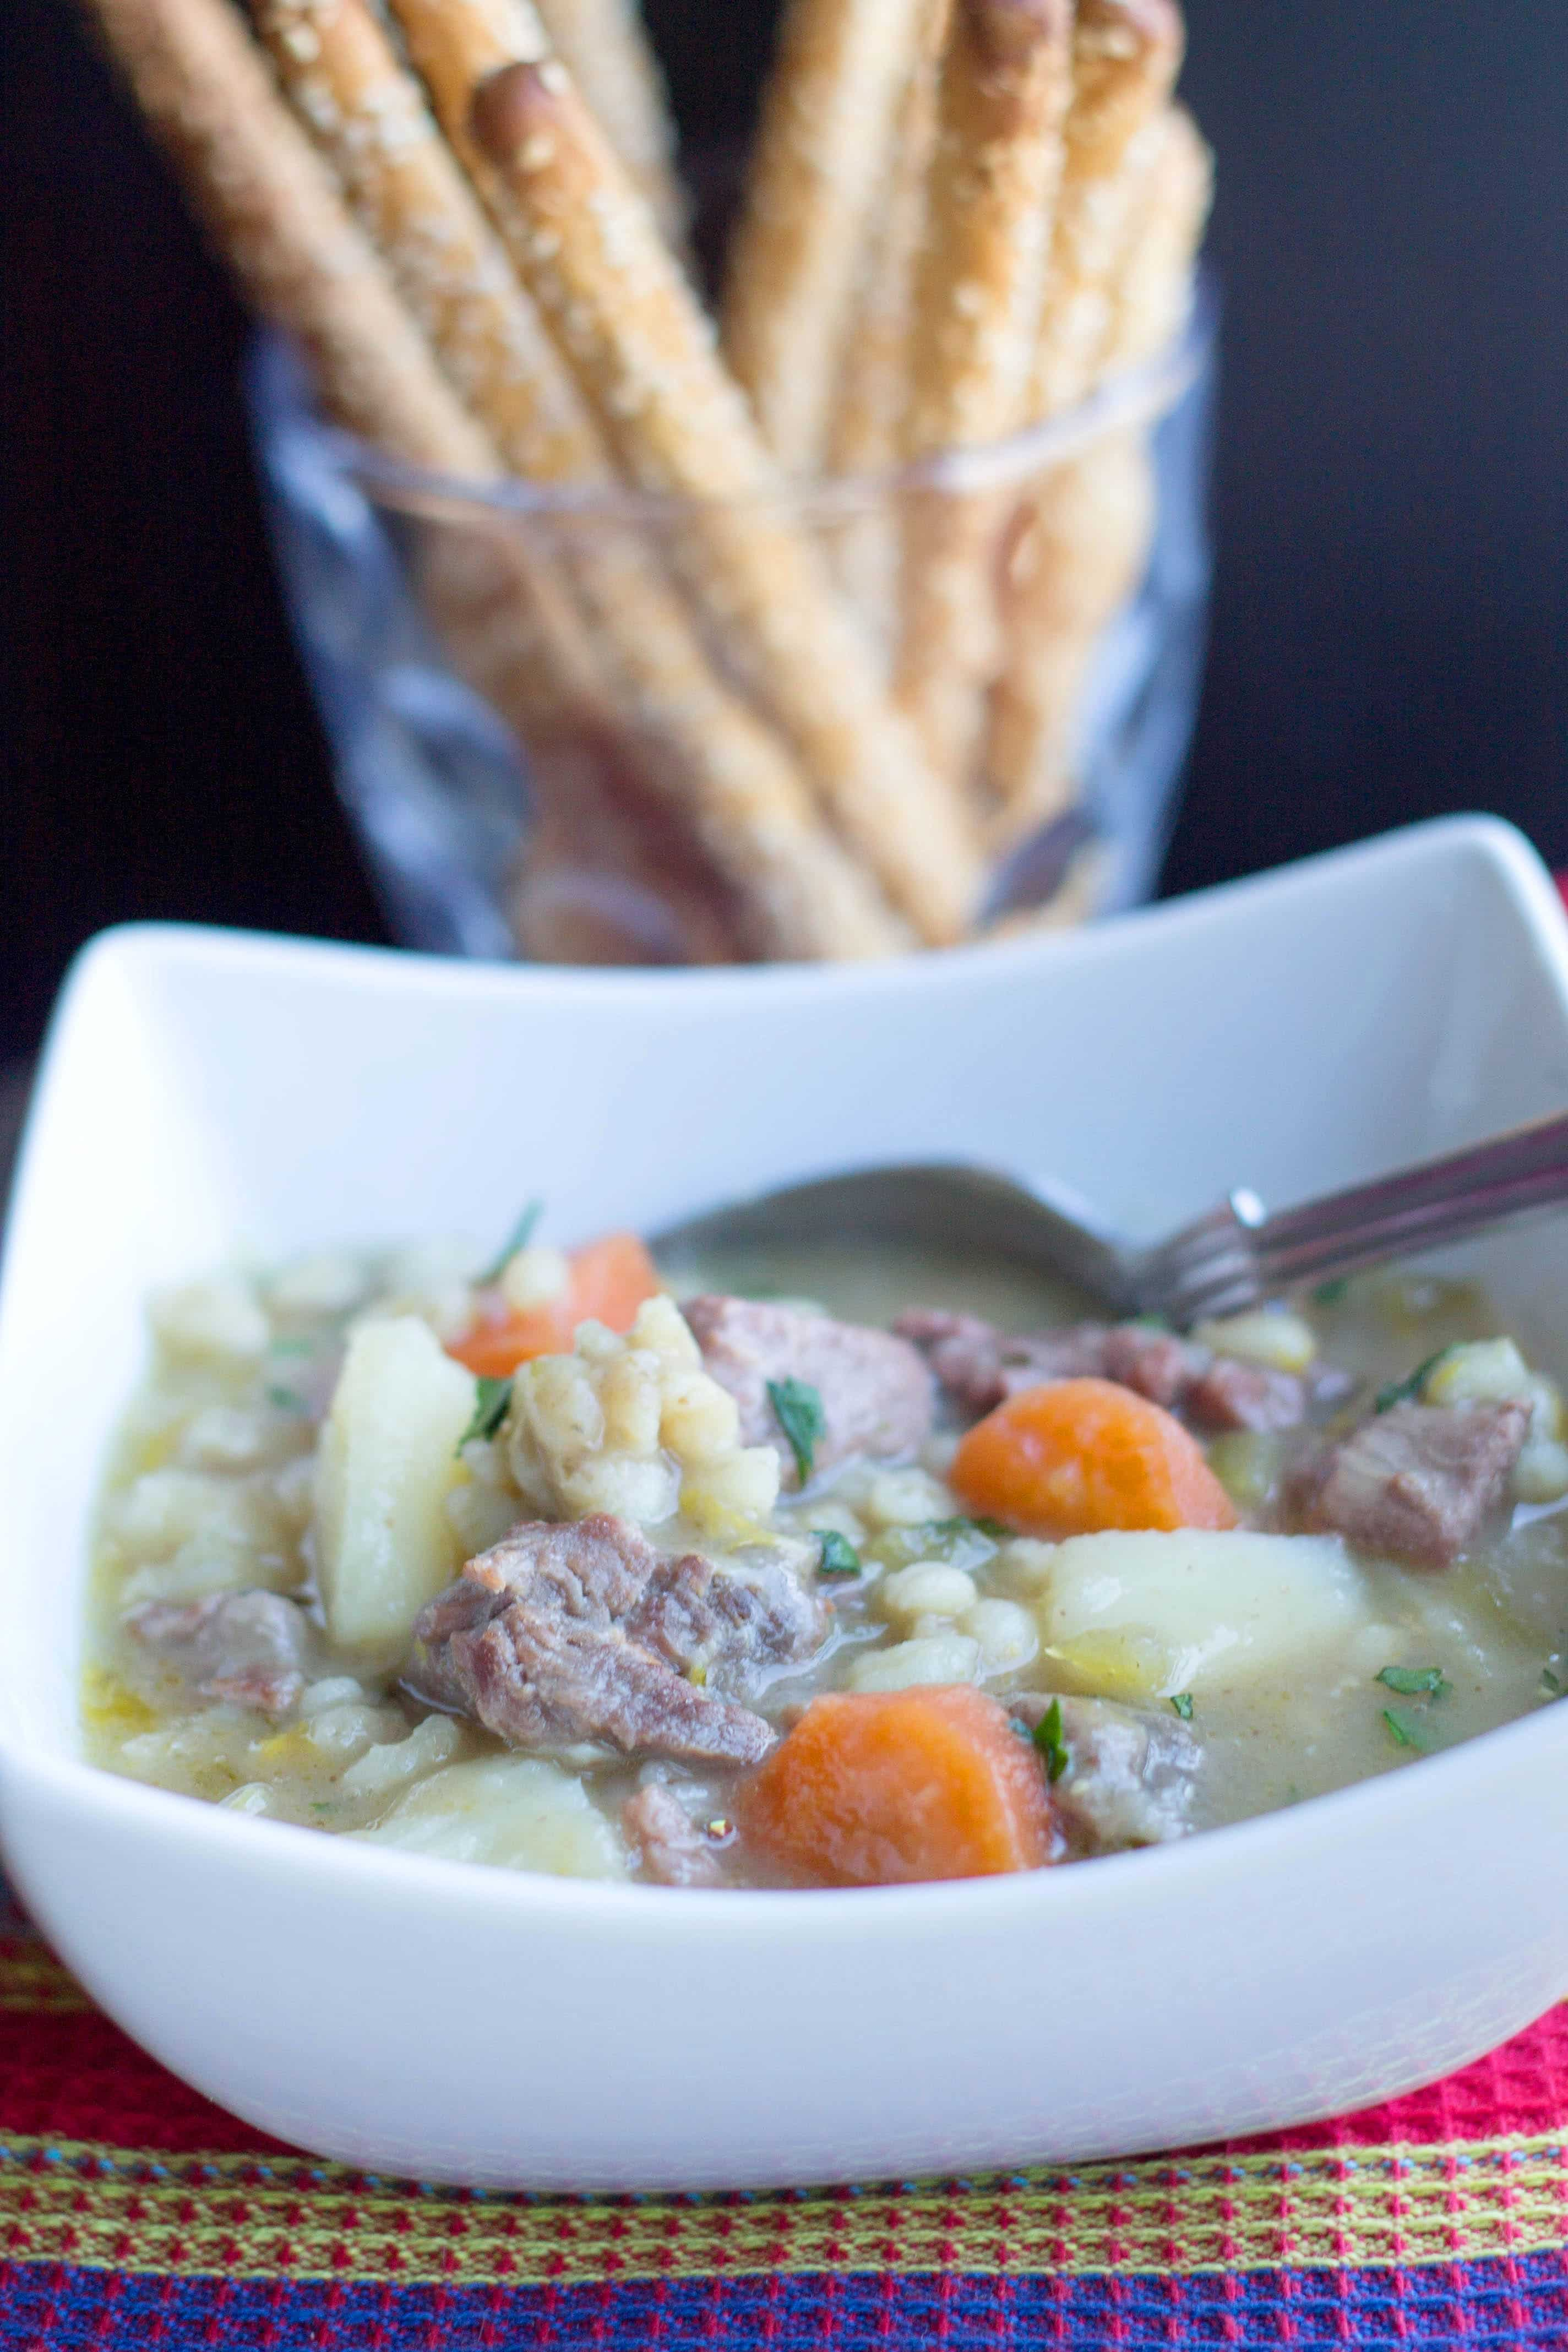 Classic Irish Stew - Erren's Kitchen - This delicious version of classic Irish Stew is a one-pot dish that uses a cheaper cut of lamb, which means you'll skimp on price but not on flavor.